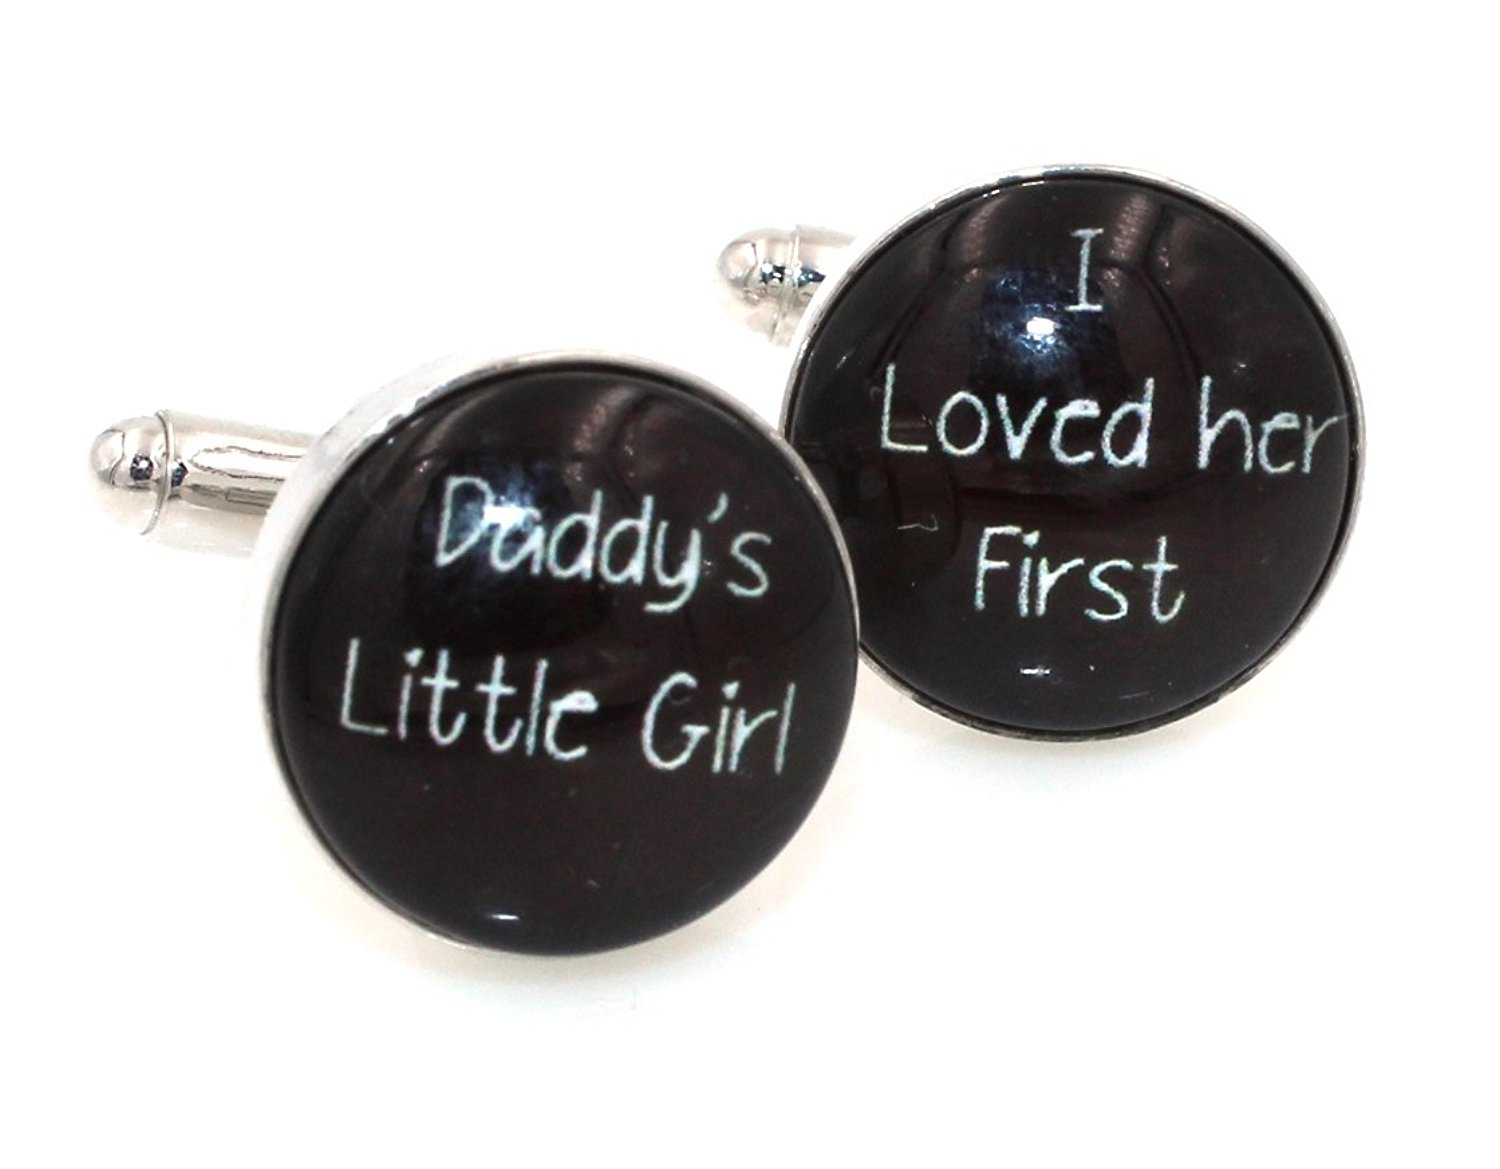 Steampunk I LOVED HER FIRST - DADDY'S LITTLE GIRL Cuff Links Mens Cufflinks Wedding Father of the Bride Groomsmen Black and White- bolddaddy